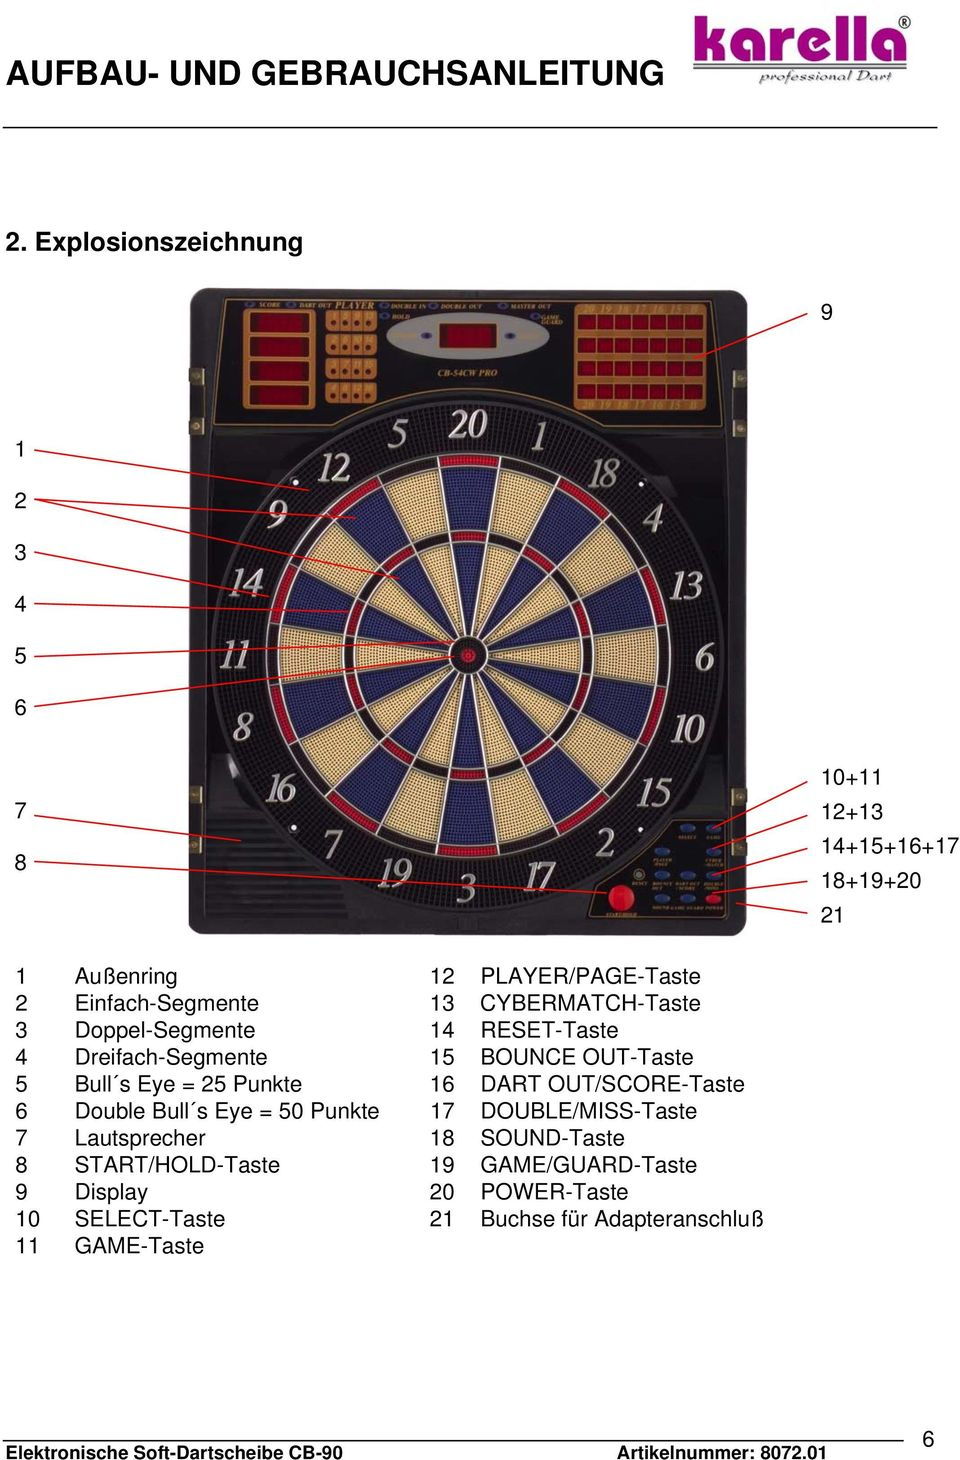 Eye = 25 Punkte 16 DART OUT/SCORE-Taste 6 Double Bull s Eye = 50 Punkte 17 DOUBLE/MISS-Taste 7 Lautsprecher 18